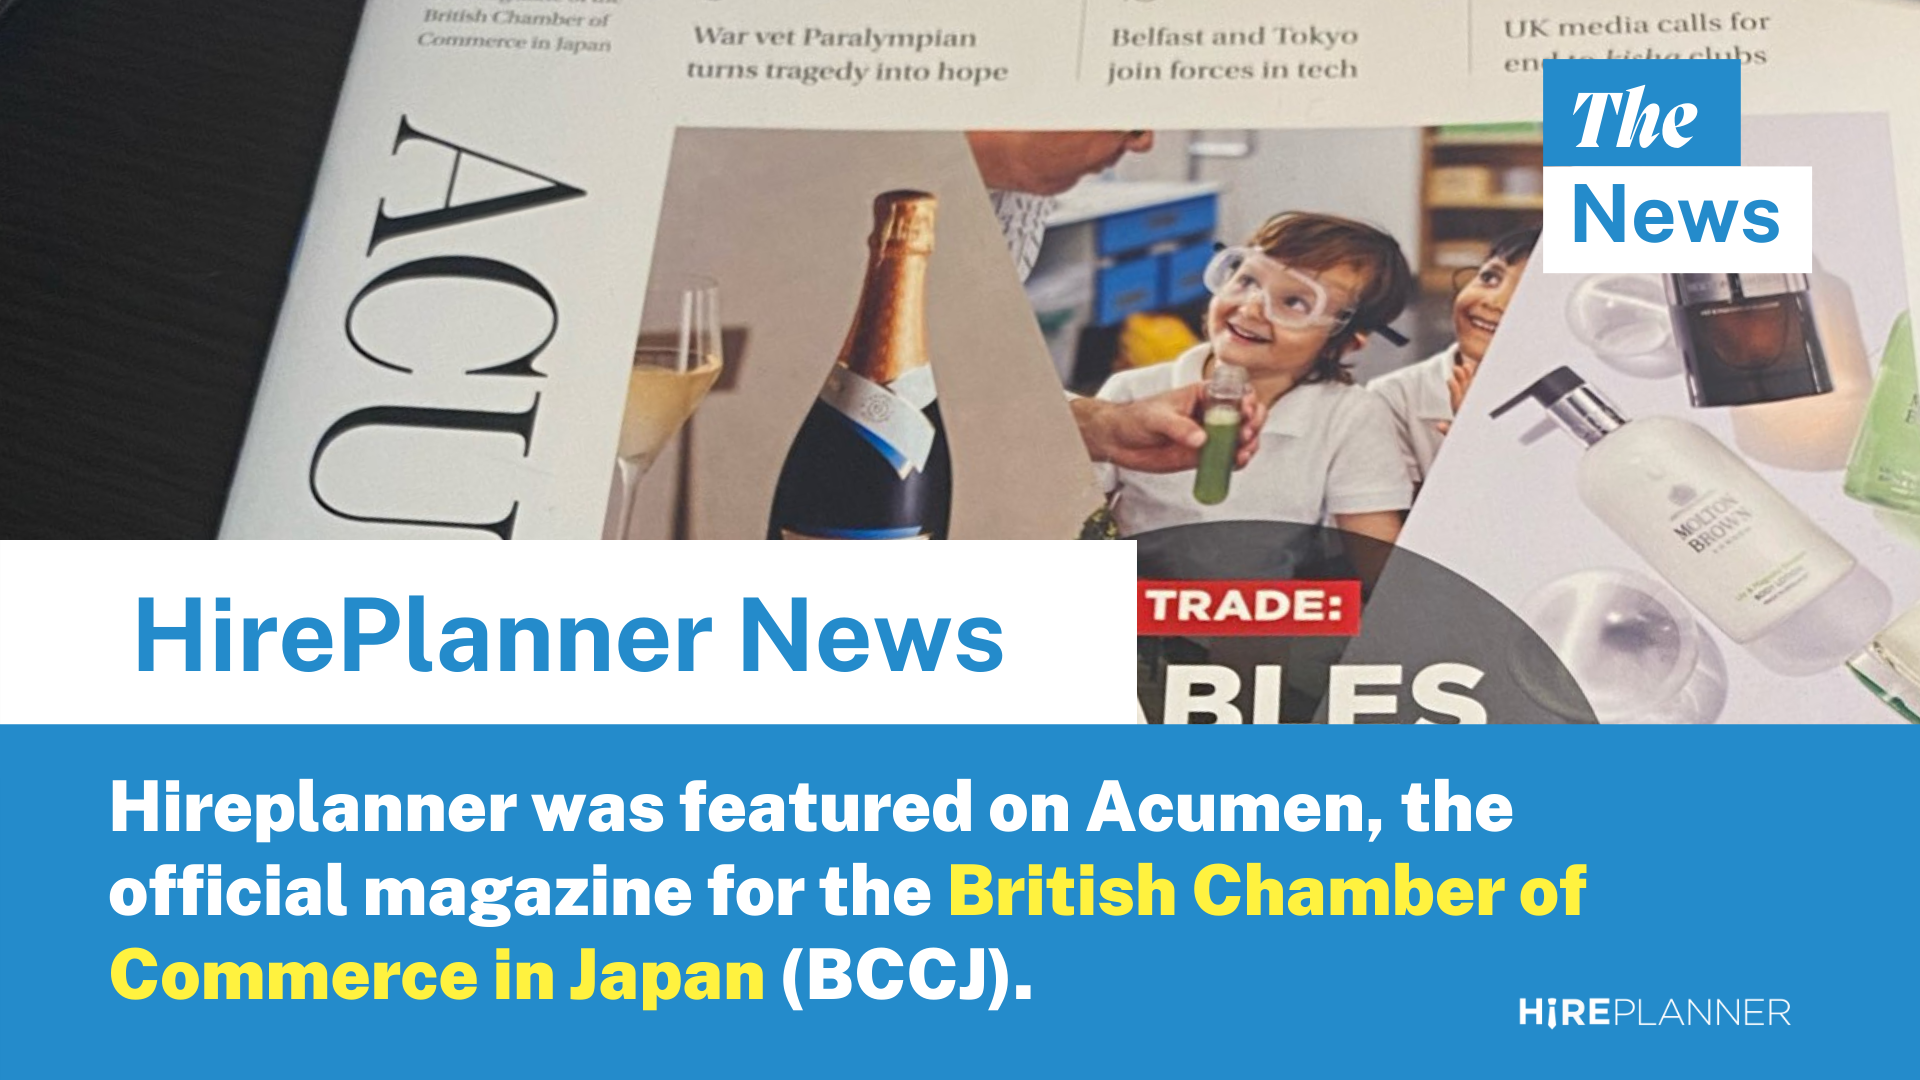 British Chamber of Commerce in Japan (BCCJ)'s Acumen magazine features HirePlanner